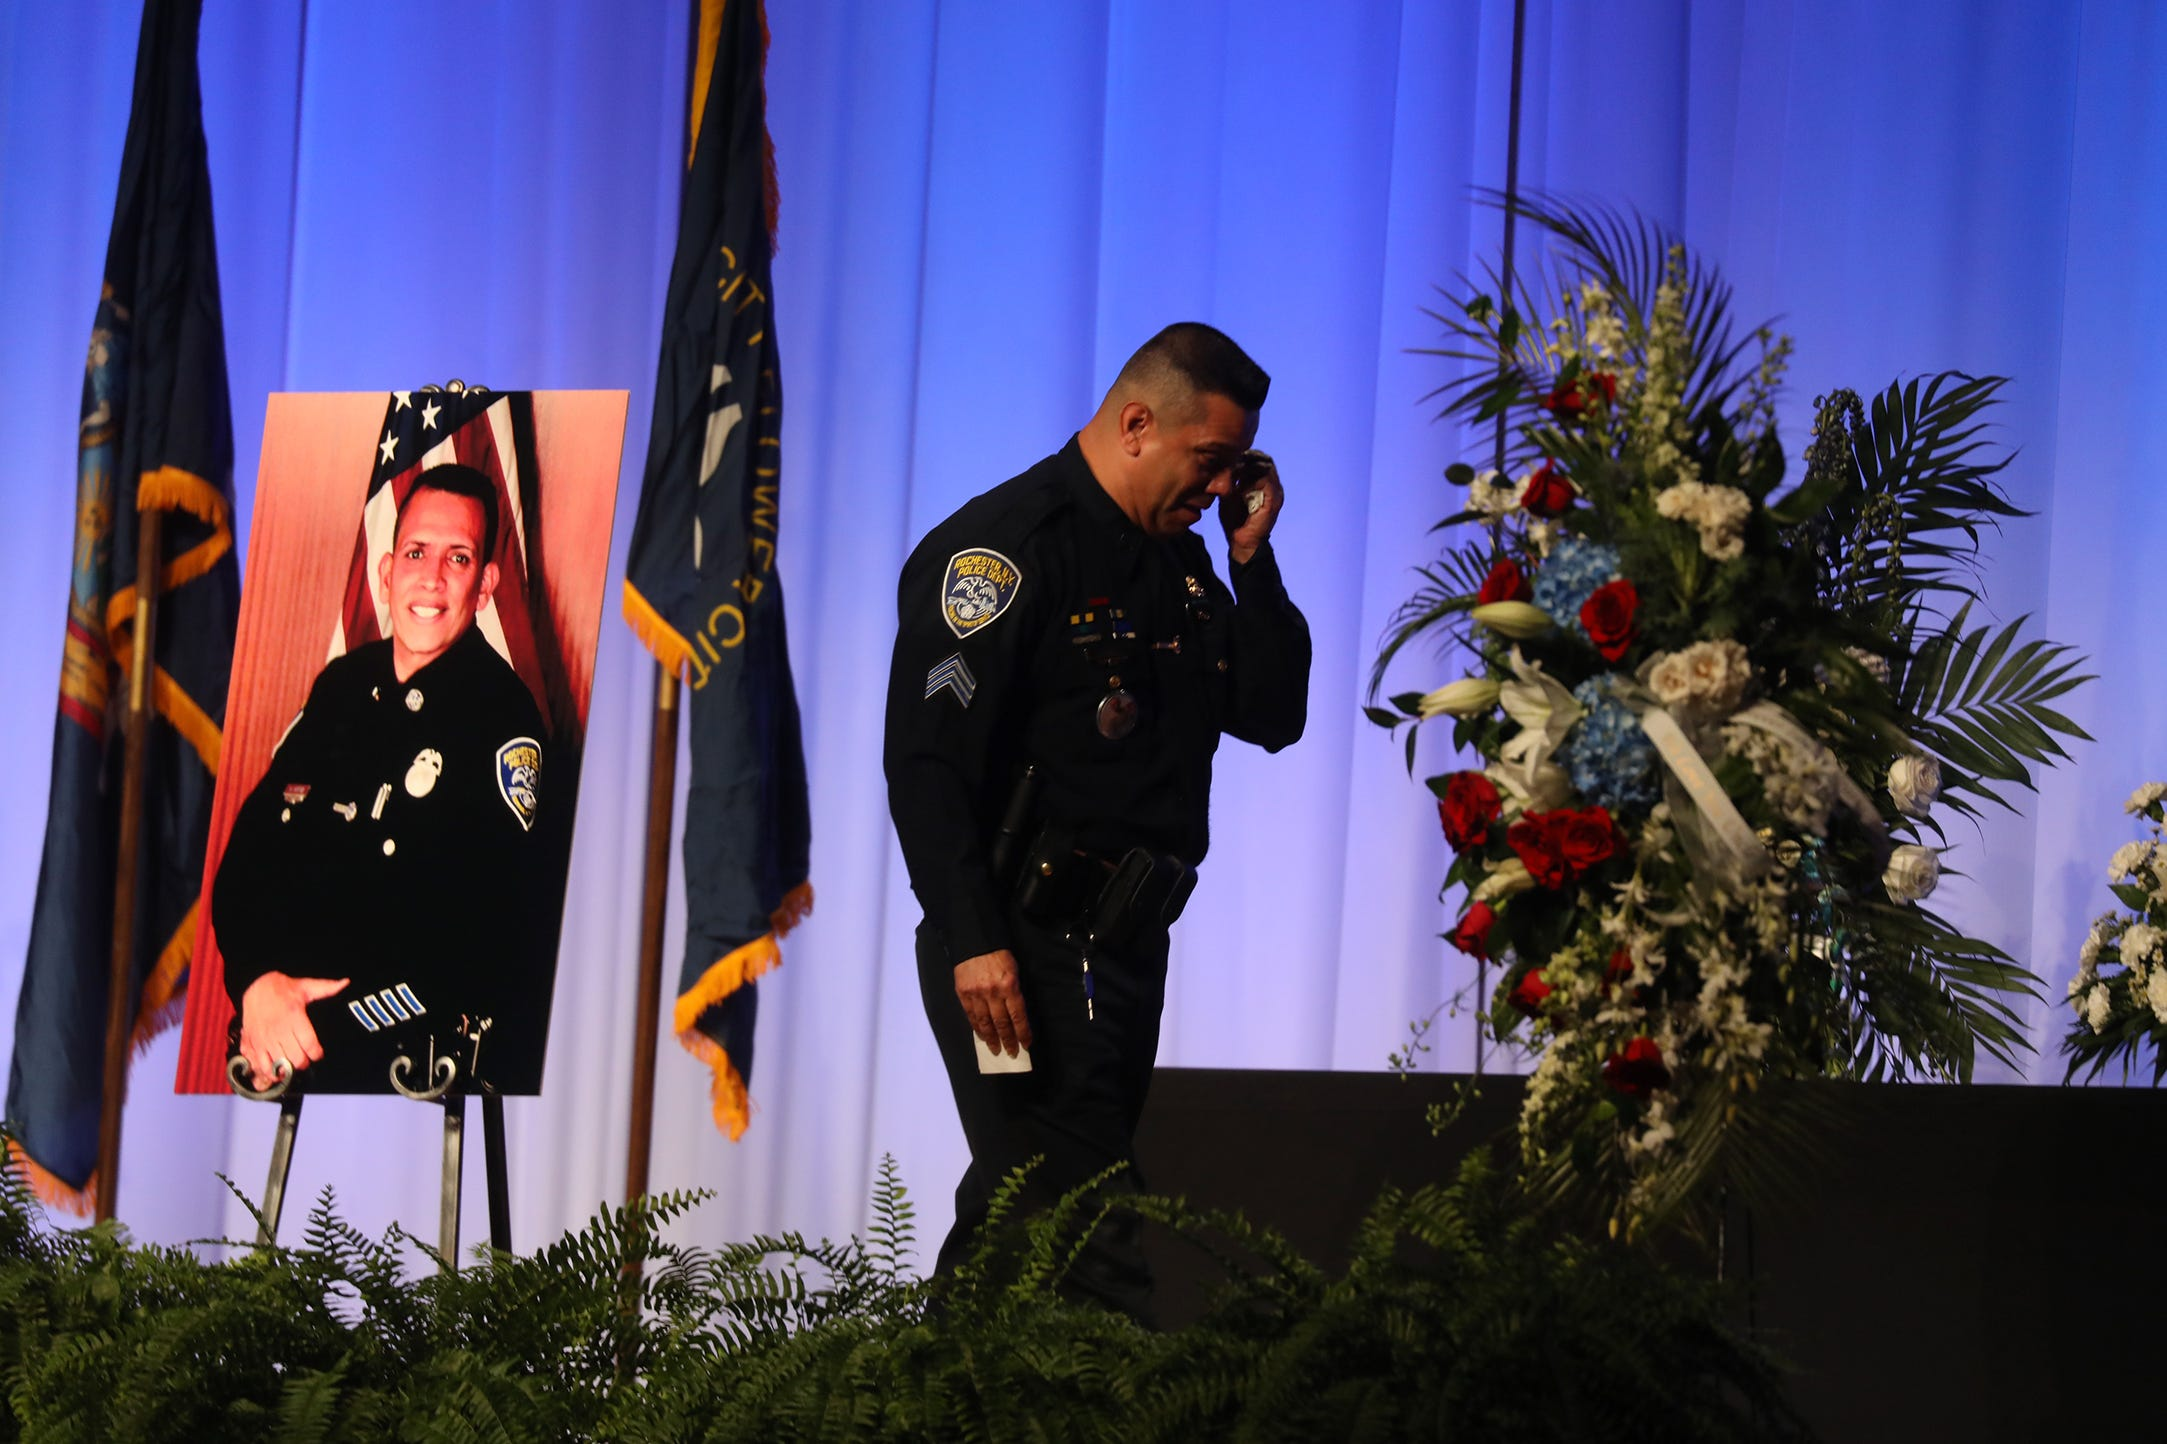 Manny Ortiz remembered as 'a cop's cop' and 'a presence that was larger than life'